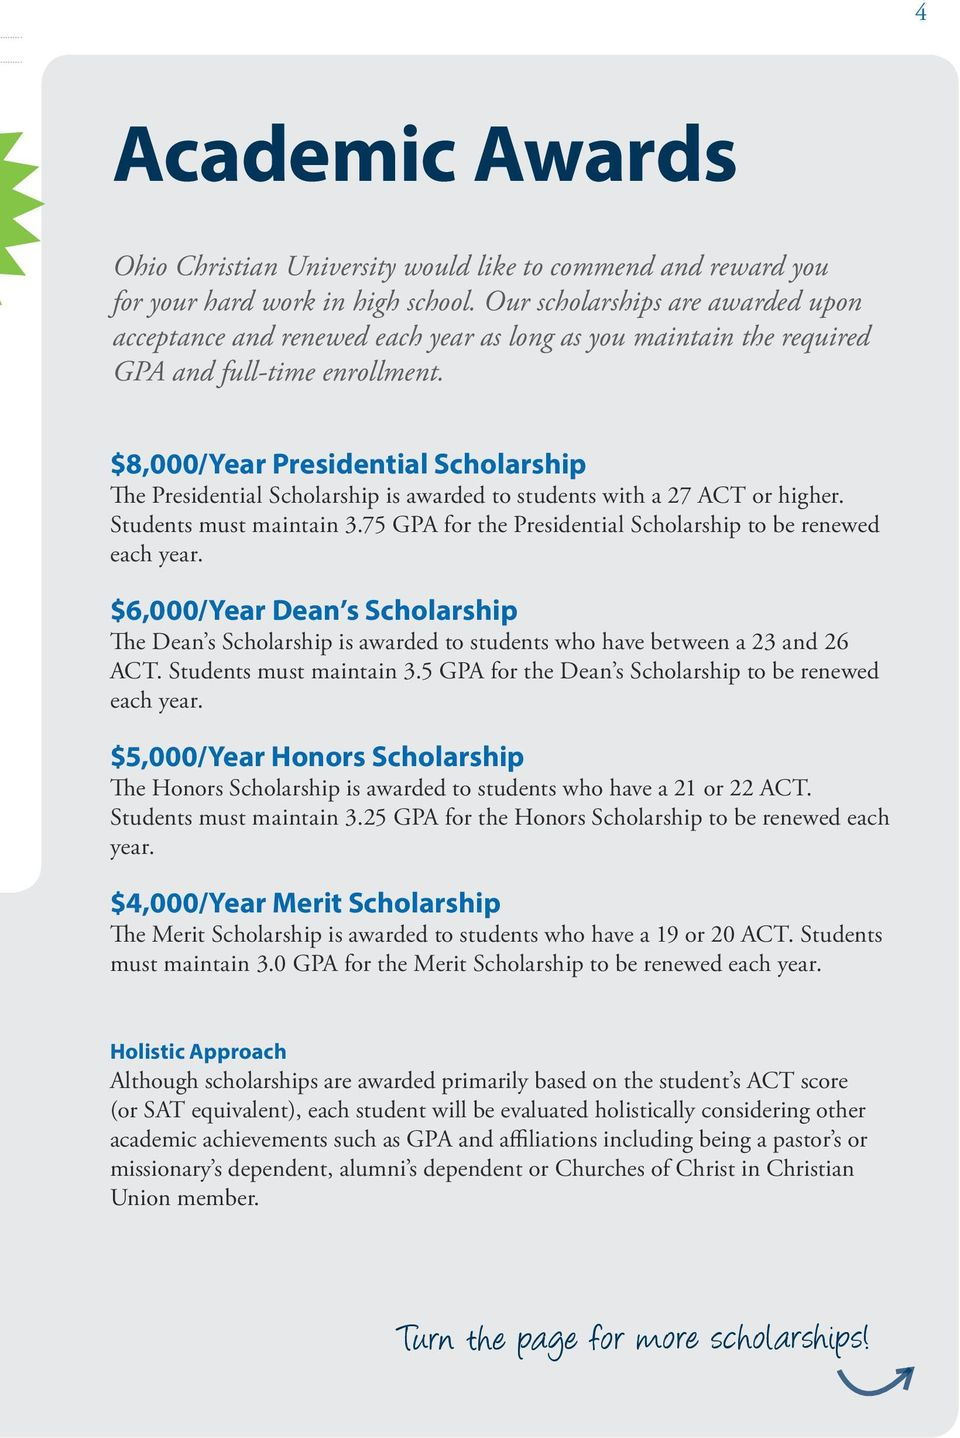 $8,000/Year Presidential Scholarship The Presidential Scholarship is awarded to students with a 27 ACT or higher. Students must maintain 3.